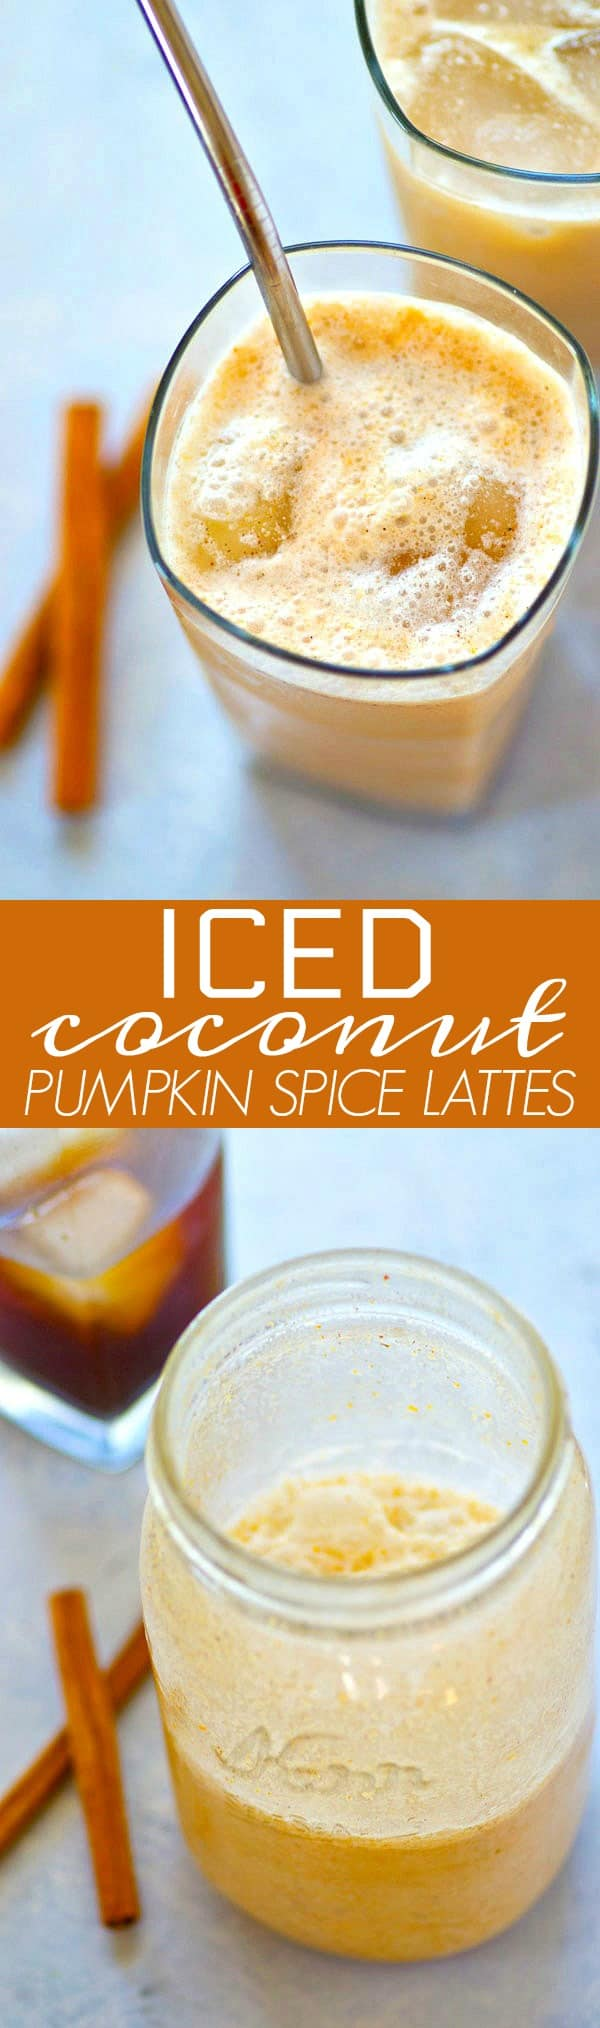 Packed with a punch of pumpkin spice flavors and refreshing coconut milk, these iced coconut pumpkin spice lattes are SUPER easy to make and a unique twist from the Starbucks classic!